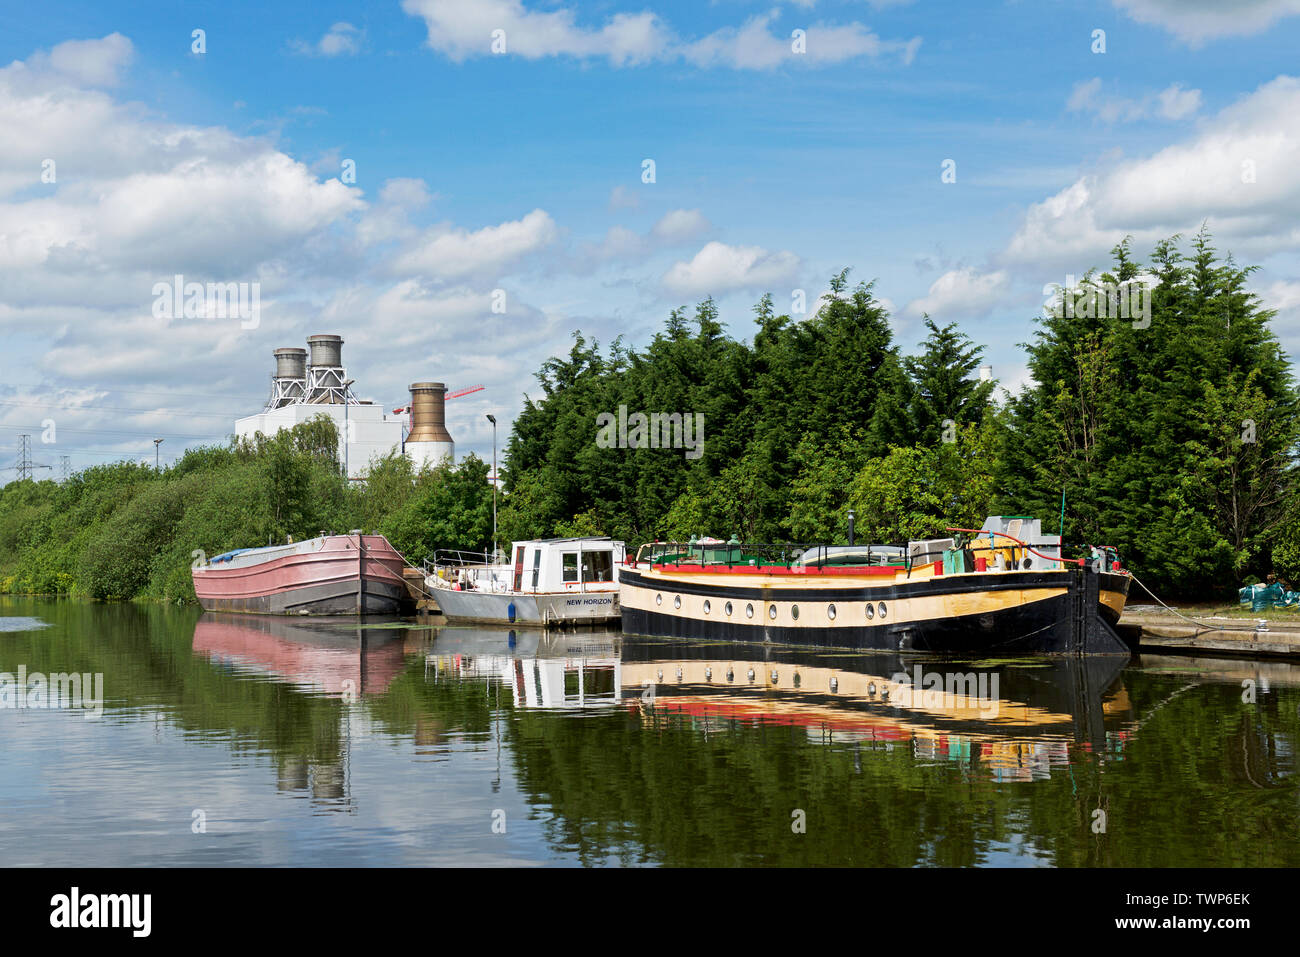 Boats moored on the Stainforth & Keadby Canal, Keadby, North Lincolnshire, England UK - Stock Image